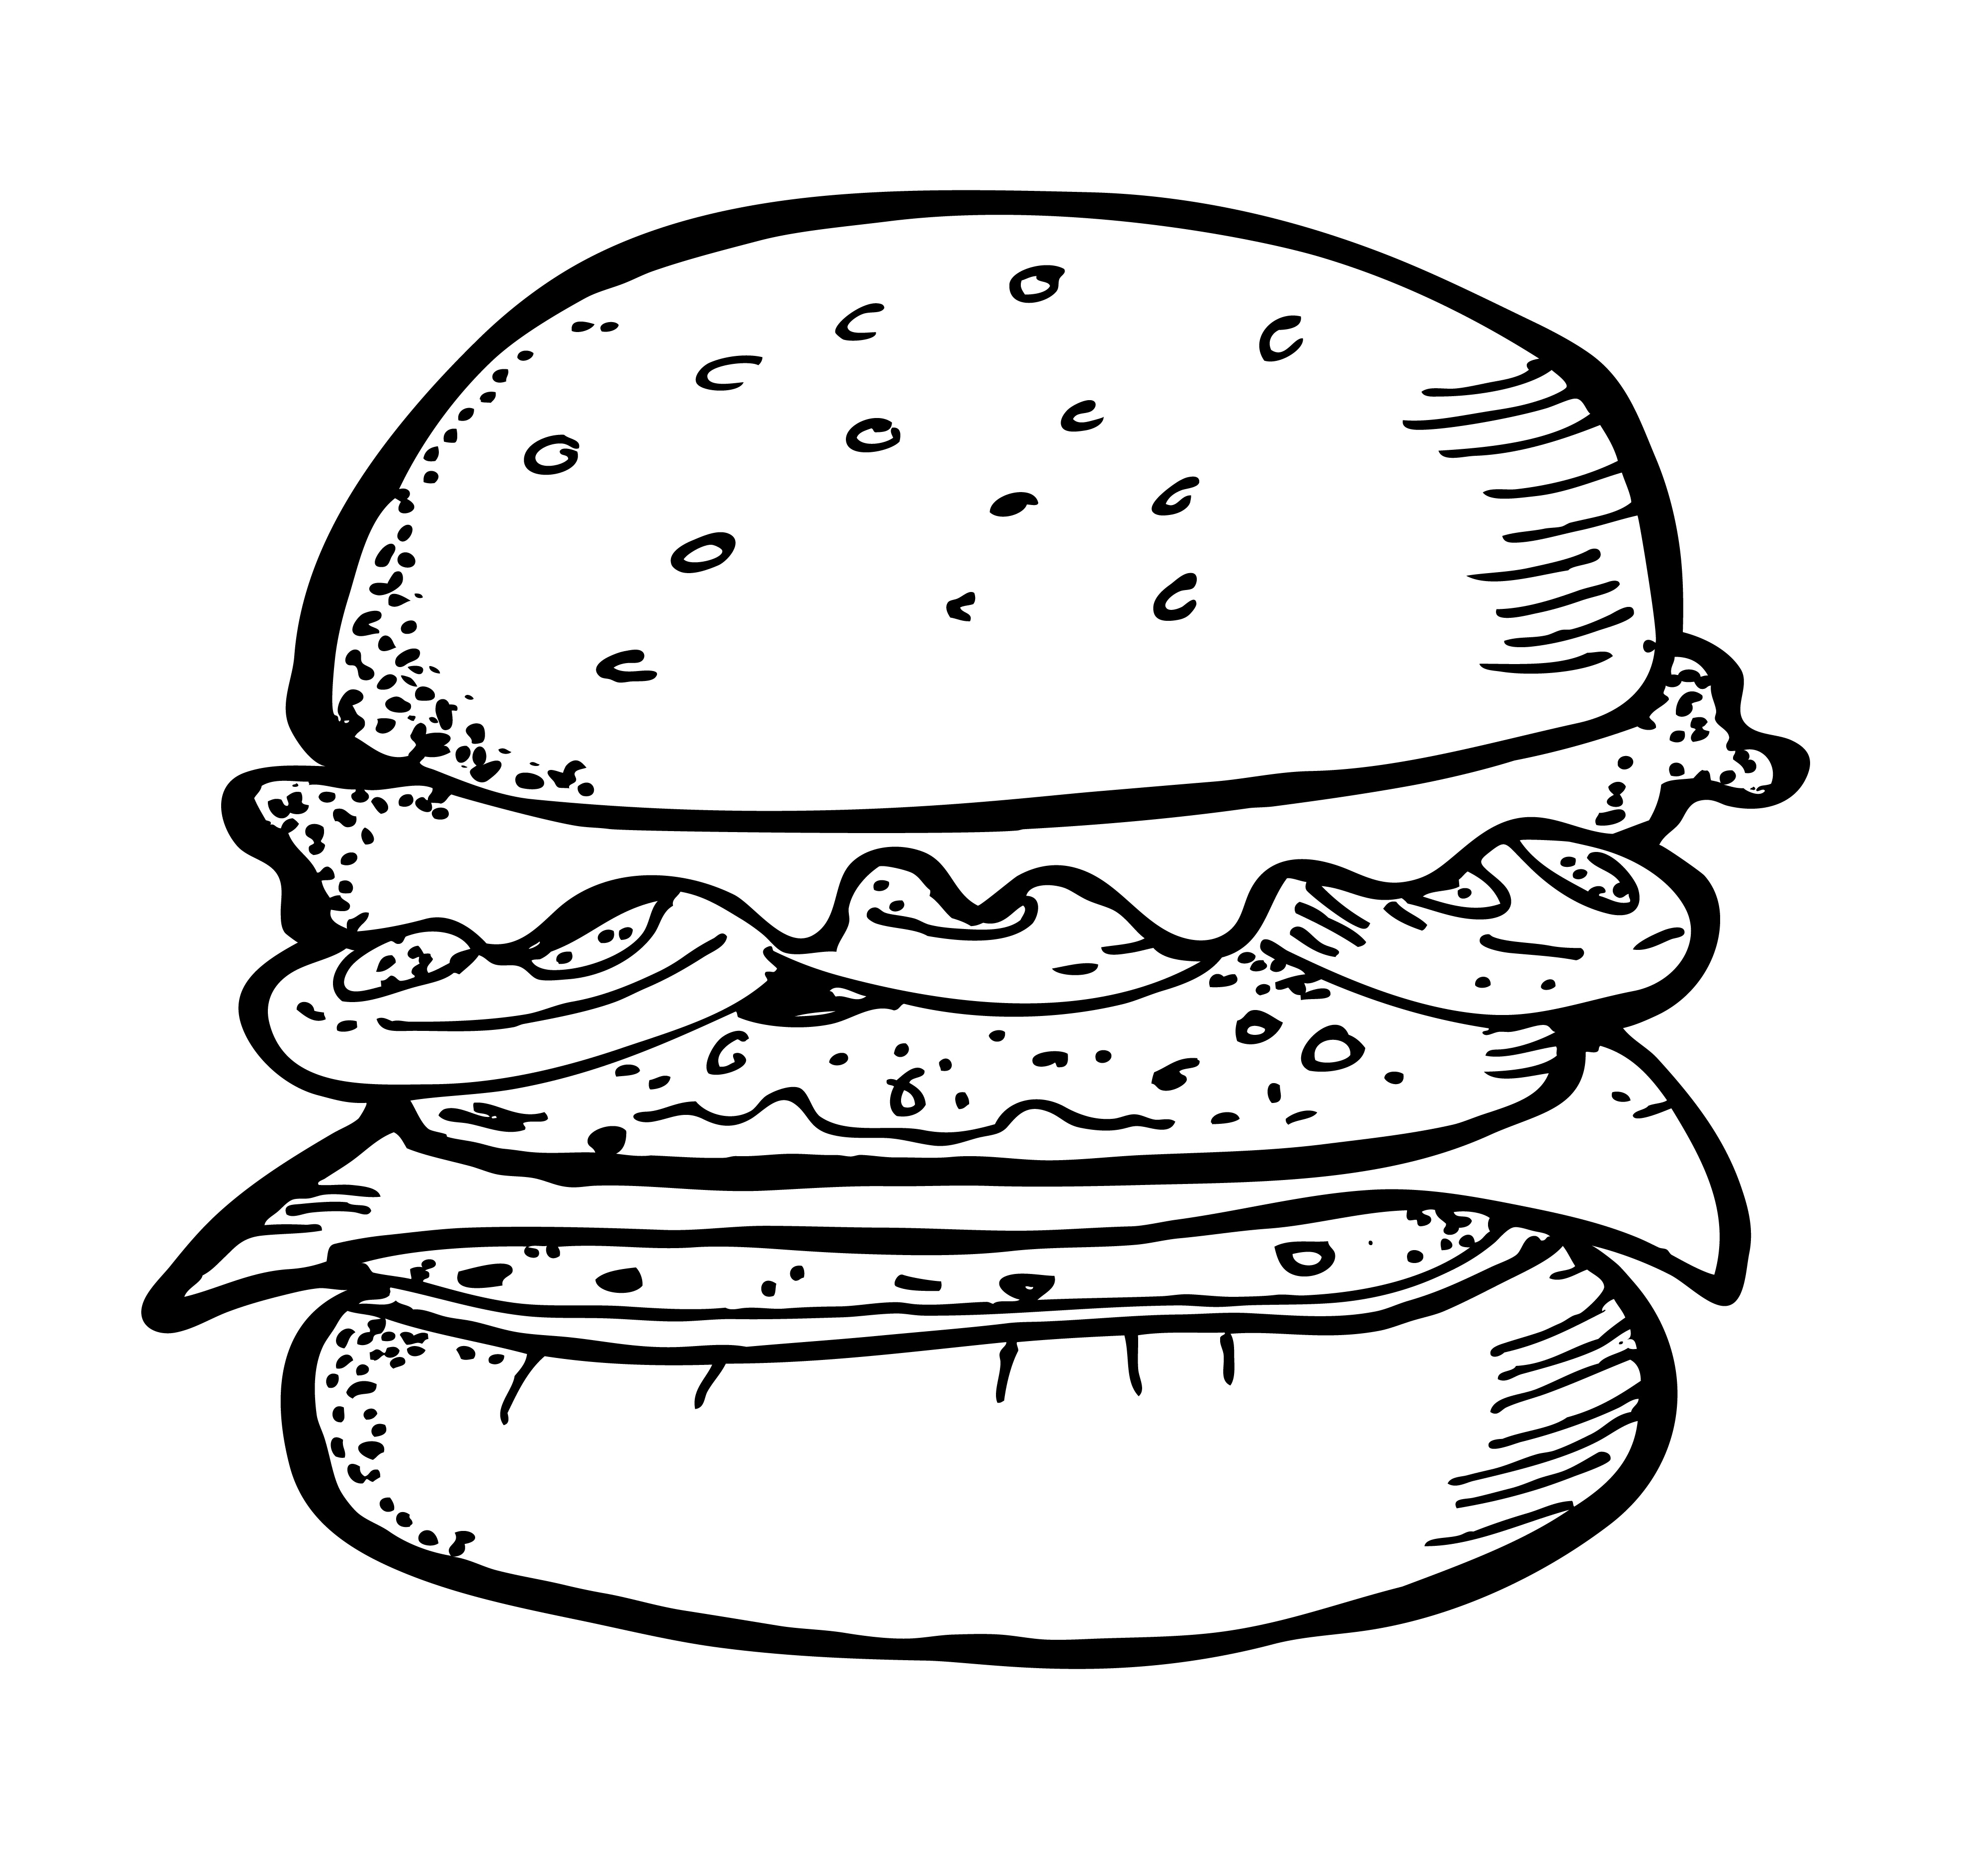 4000x3740 Burger And Fries Drawing Burger And Fries Drawing Delux Drawings